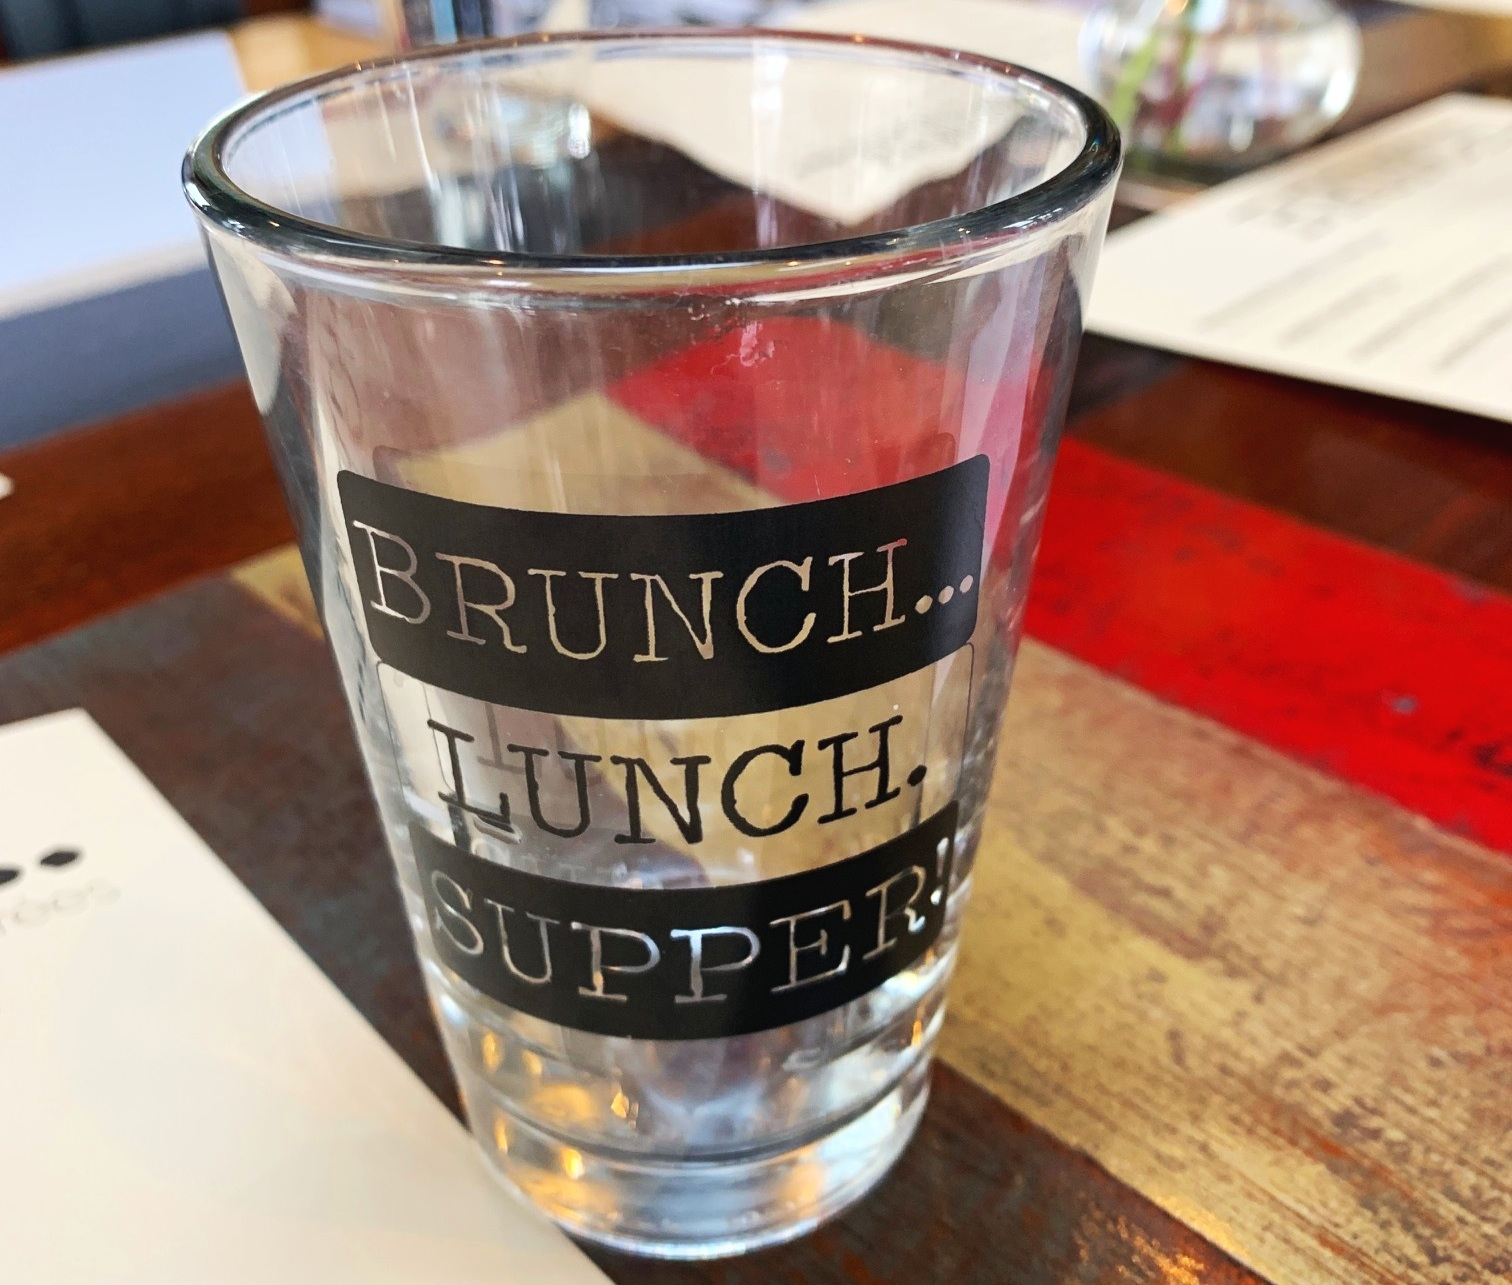 brunch dinner richmond va review